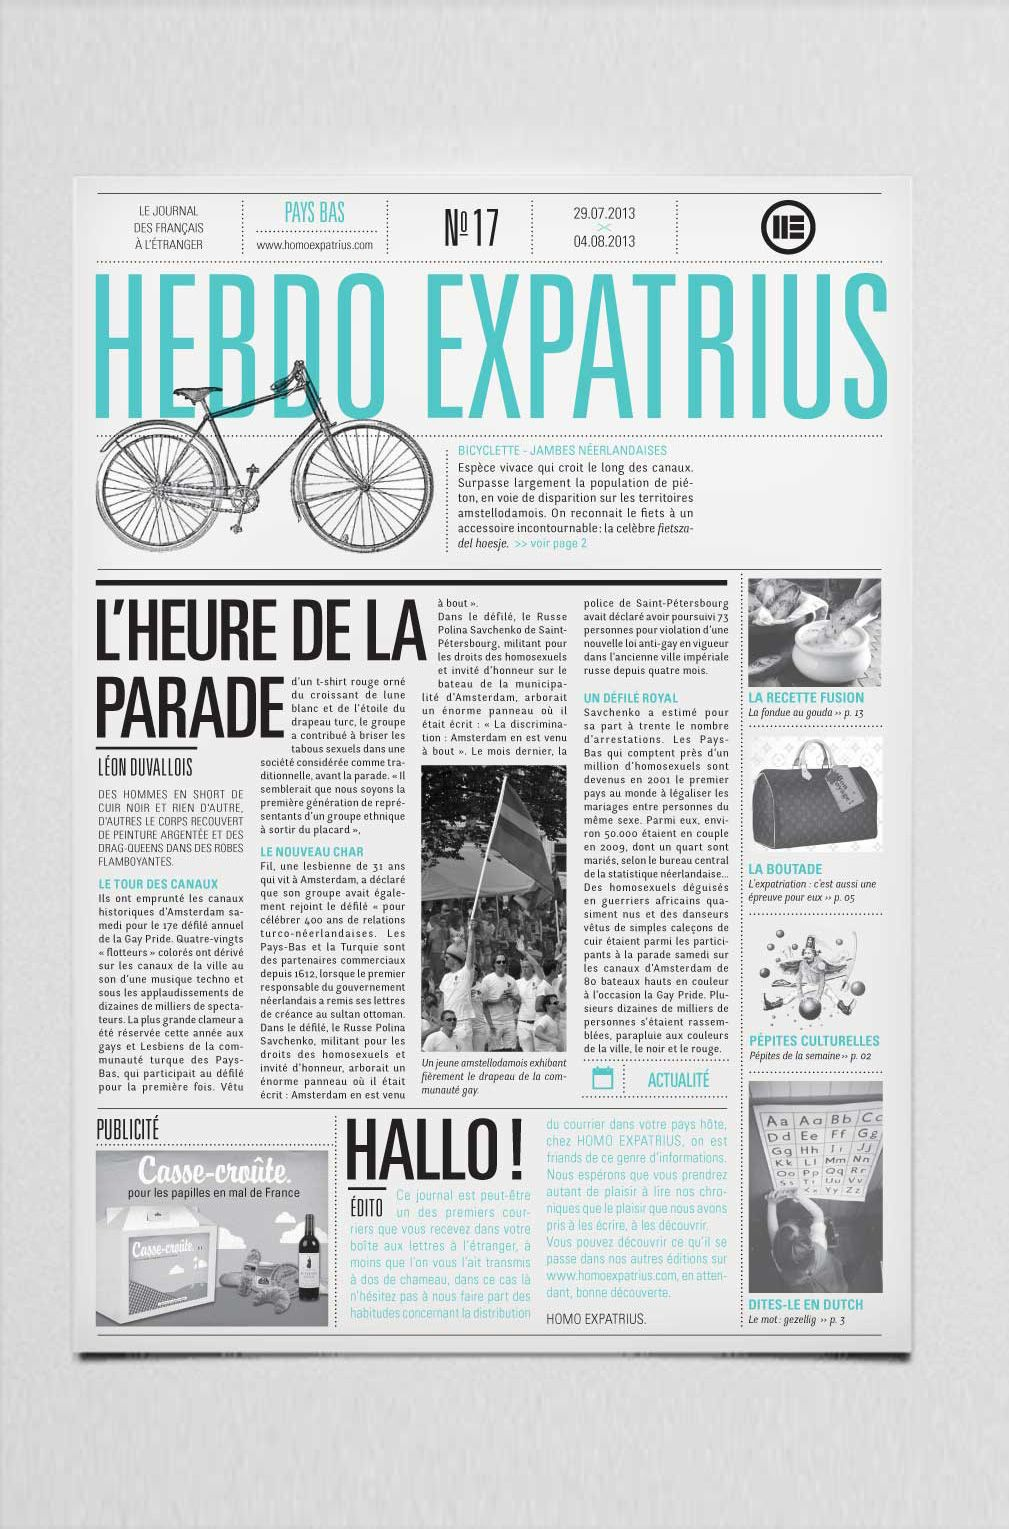 print journal magazine - newspaper